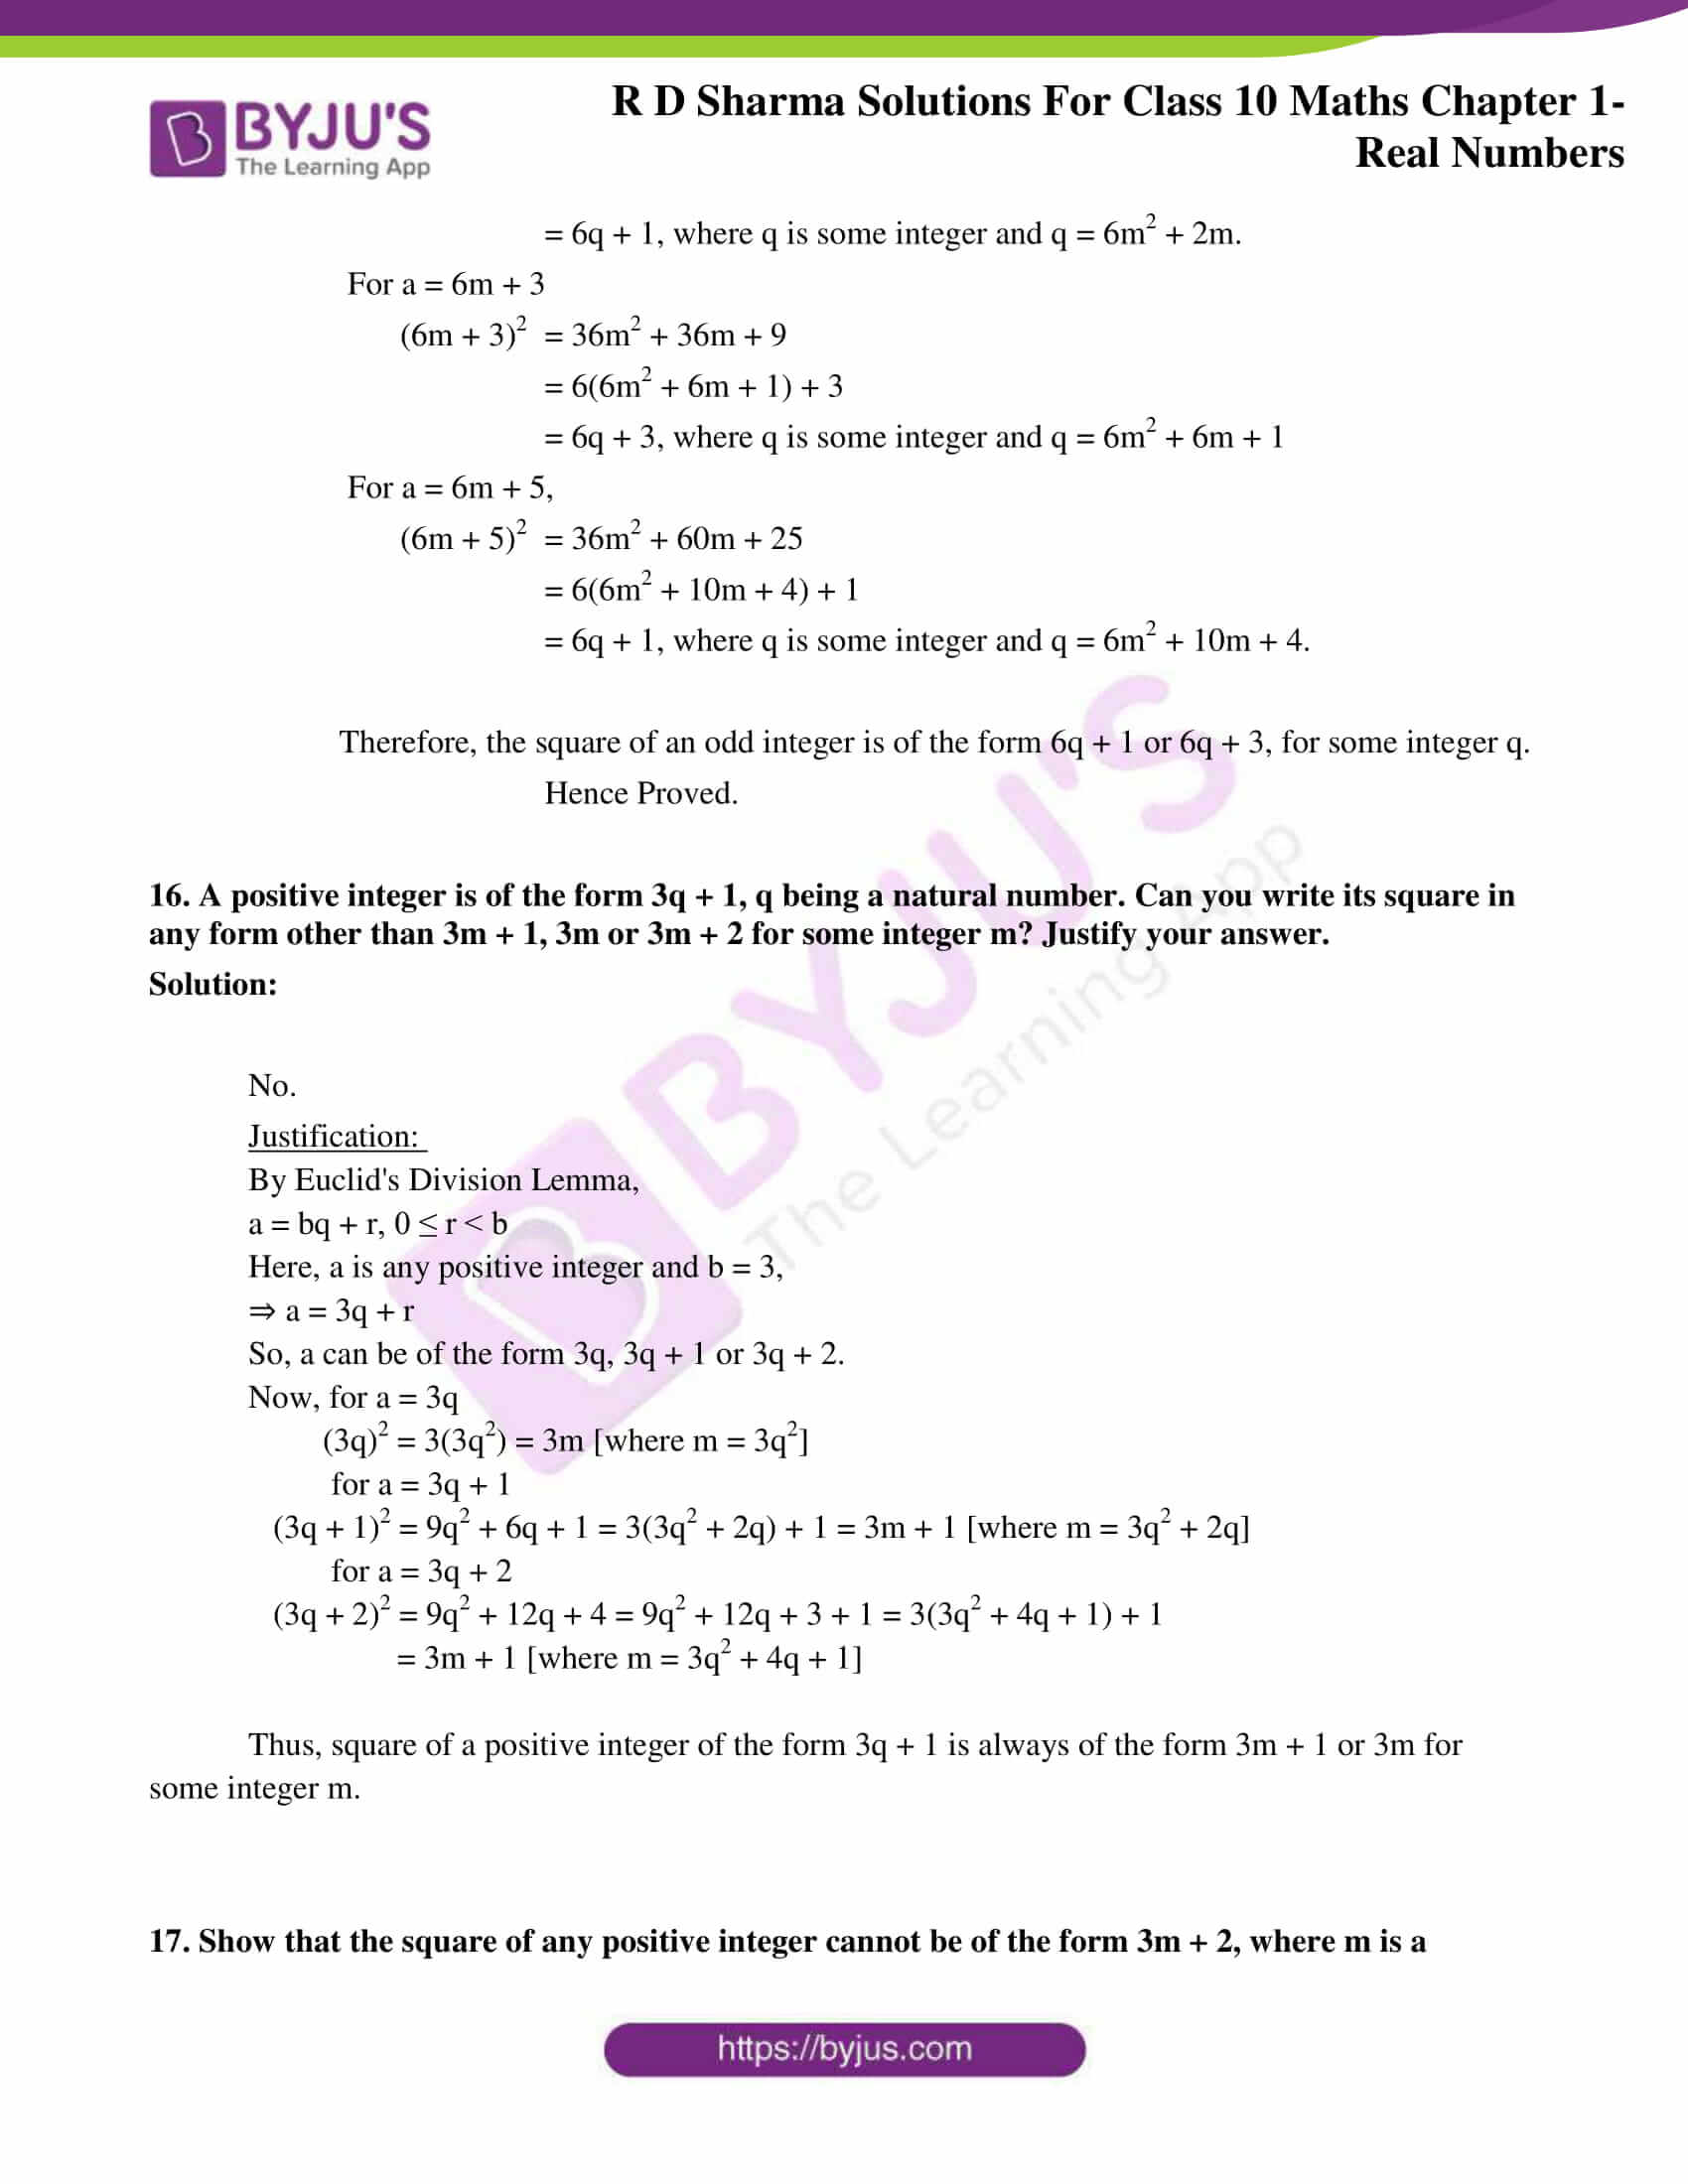 rd sharma class 10 chapter 1 real numbers solutions exercise 1 11